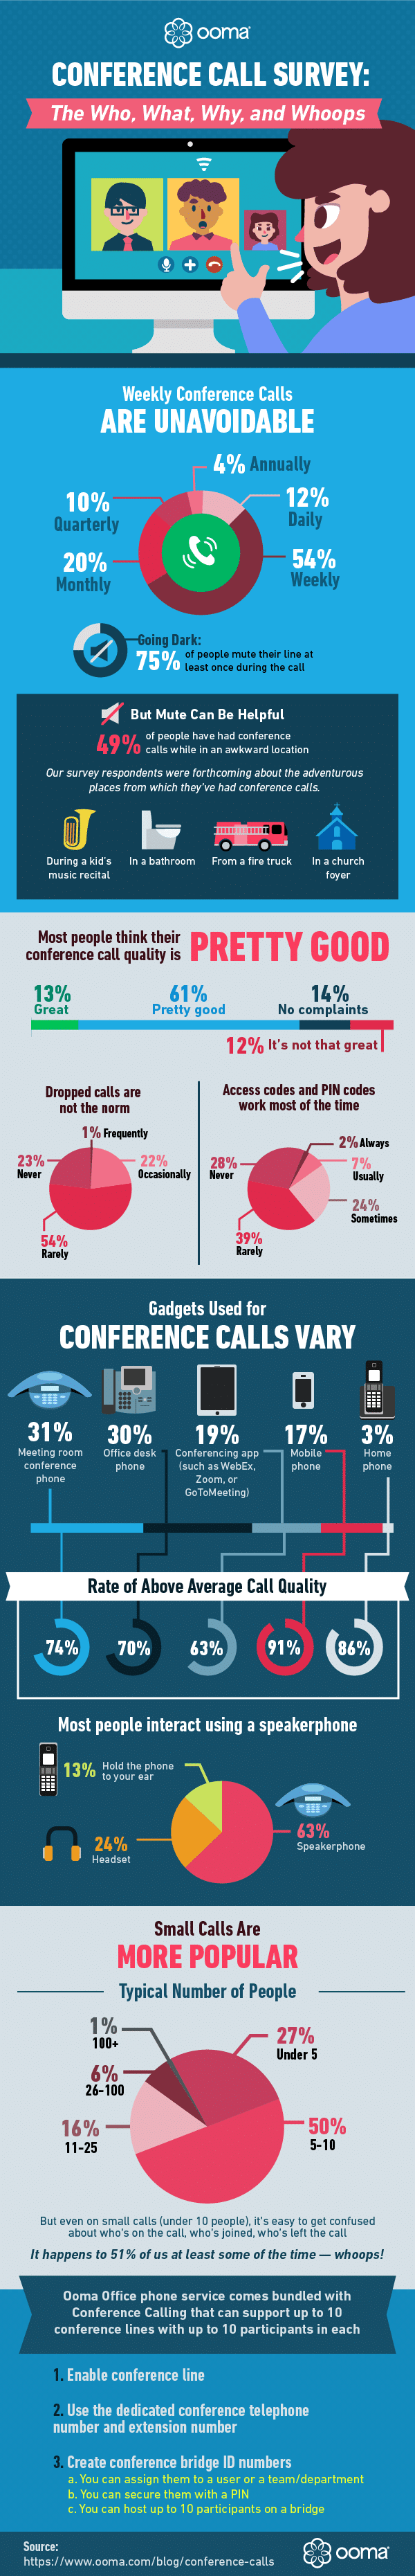 Conference Calls Guide Business Infographic